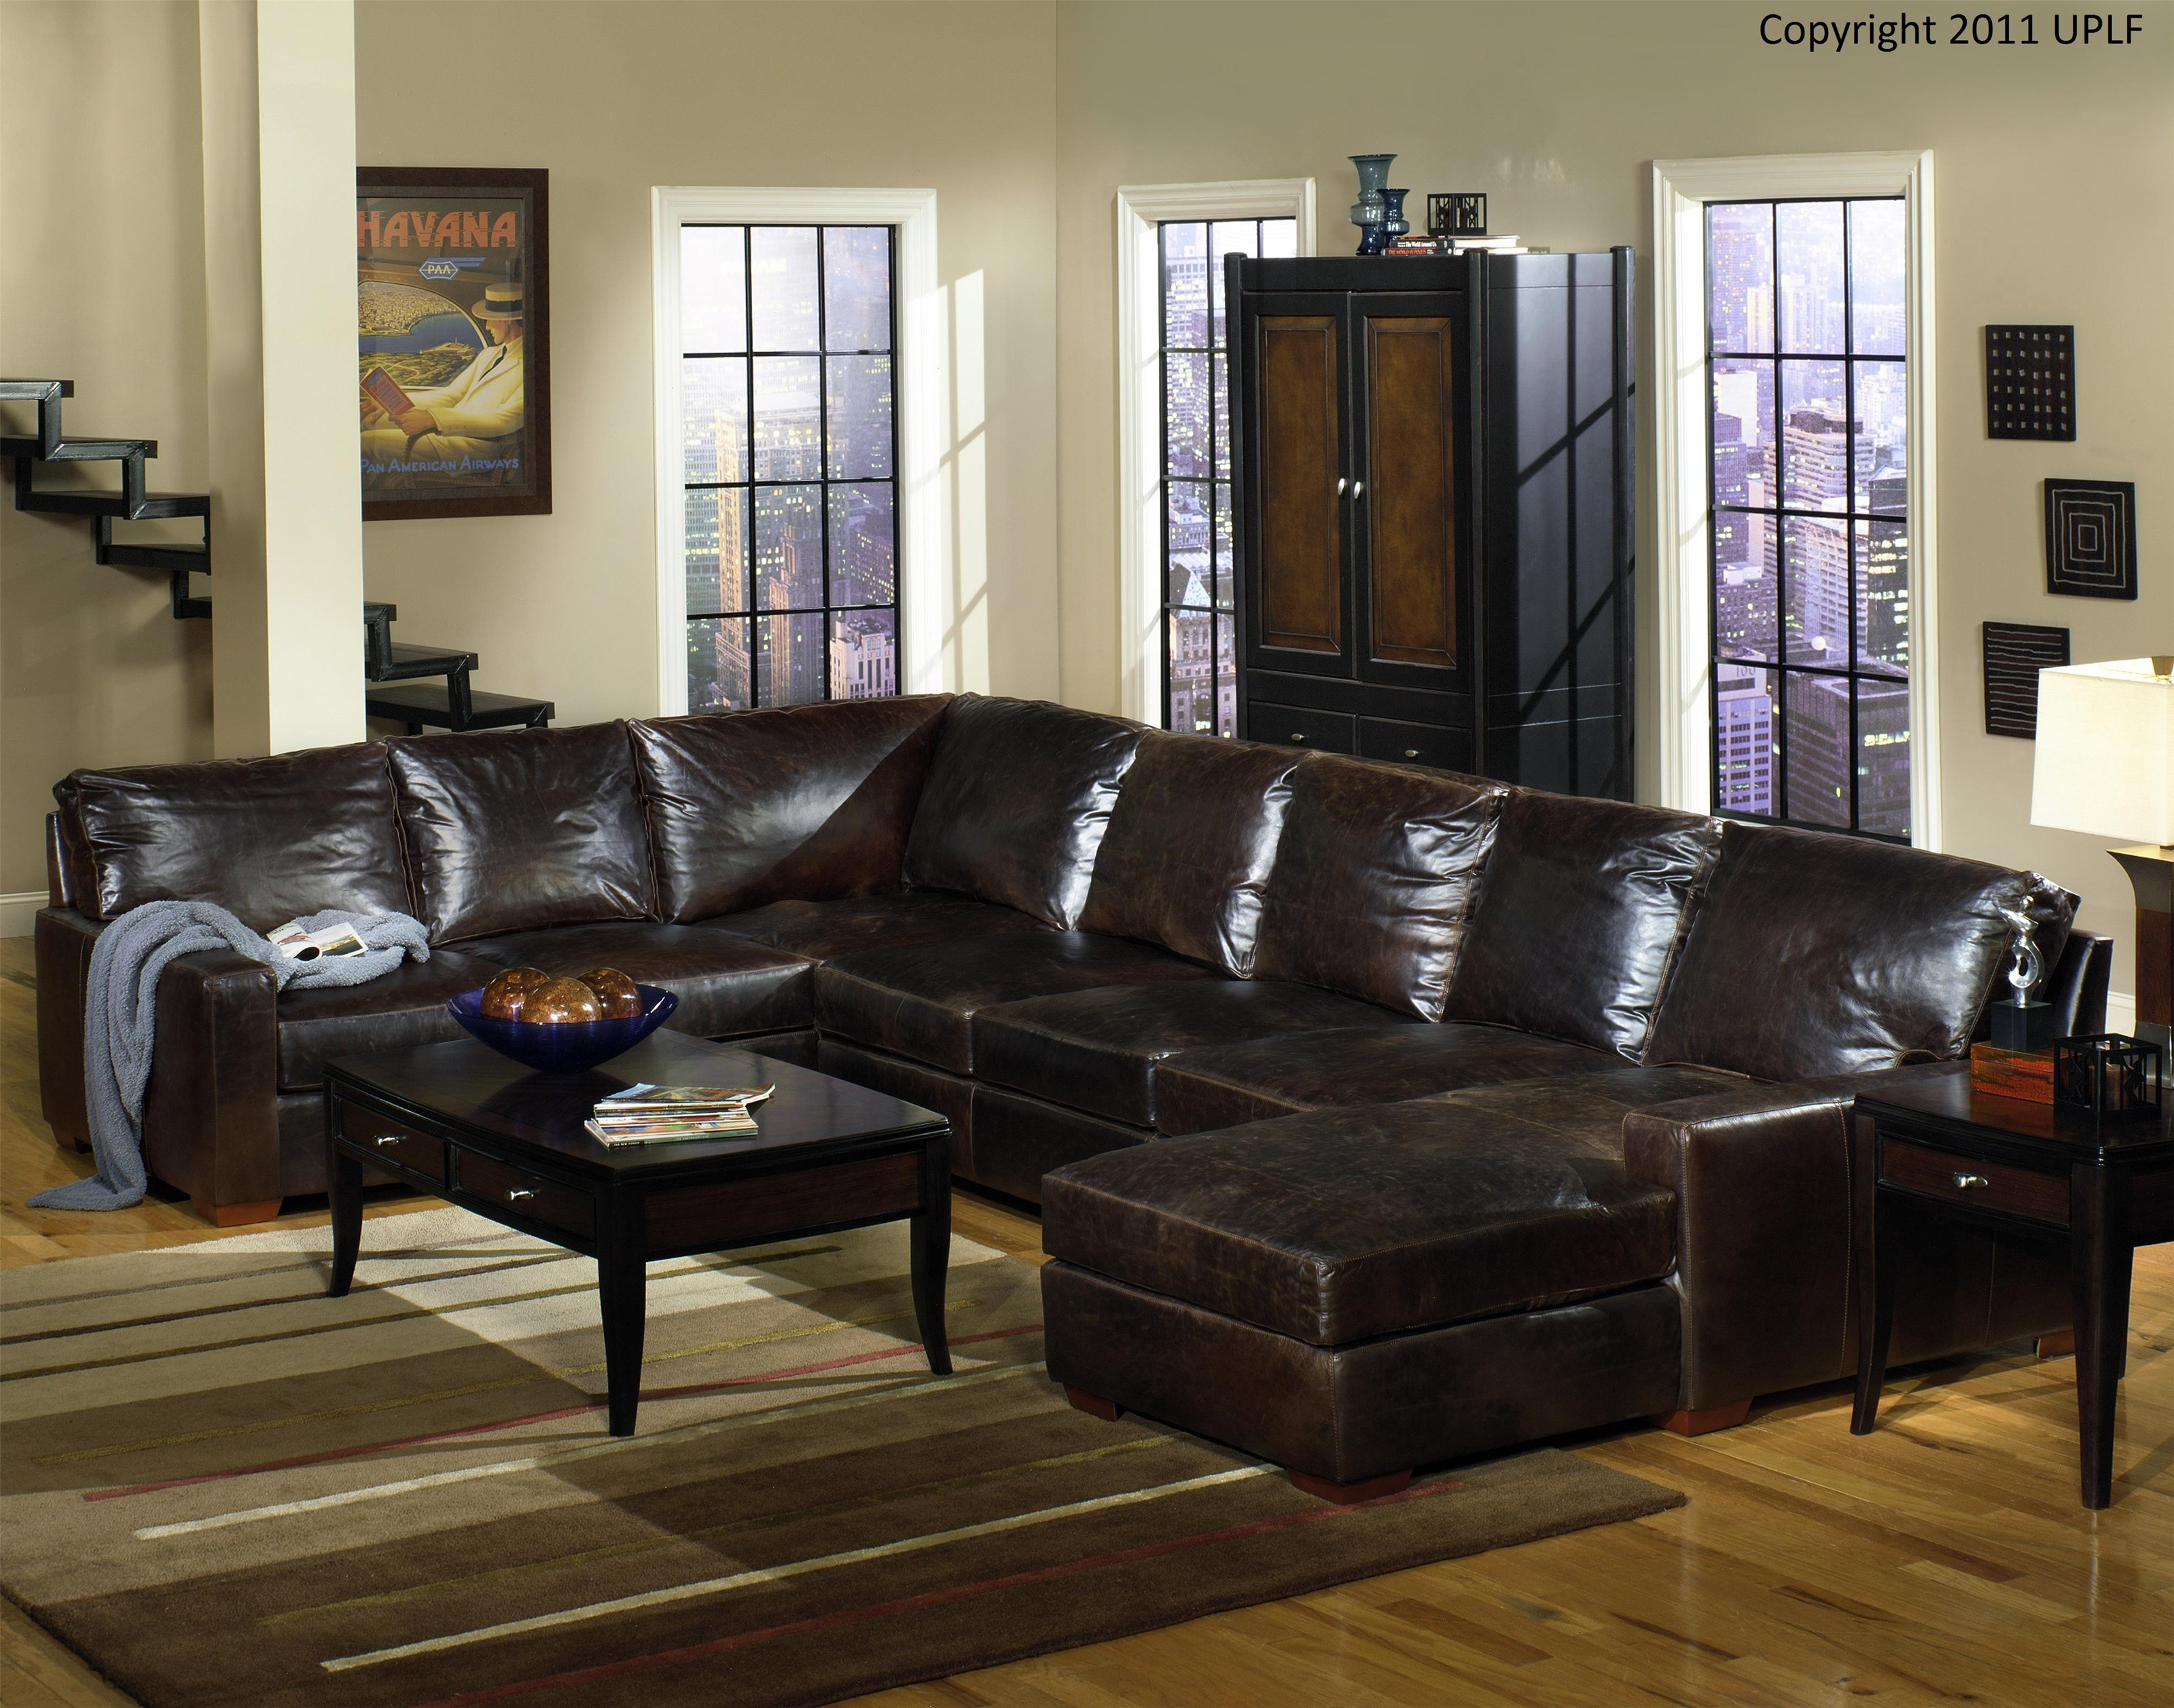 Frasier Fraiser Leather Sectional Sofa by USA Premium Leather at Morris Home